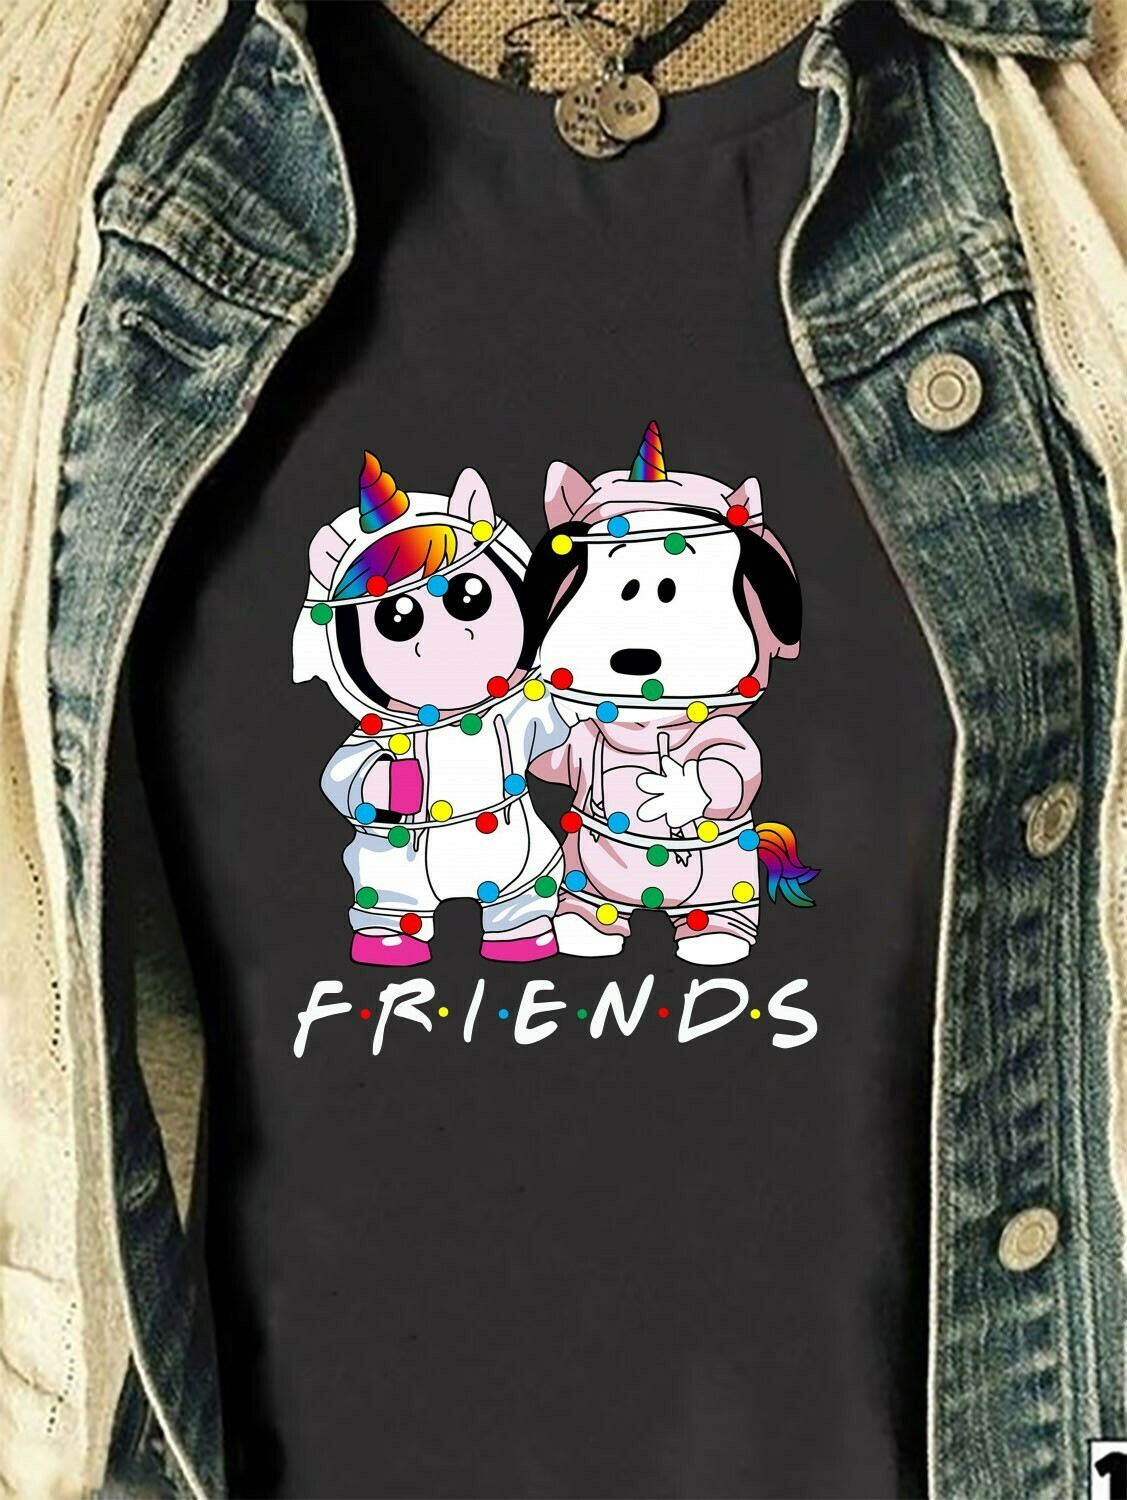 snoopy and Unicorn Ugly light Christmas charlie brown the peanuts fans Horse snoopy and friends Dabbing Around Funny Christmas party T shirt Long Sleeve Sweatshirt Hoodie Jolly Family Gifts